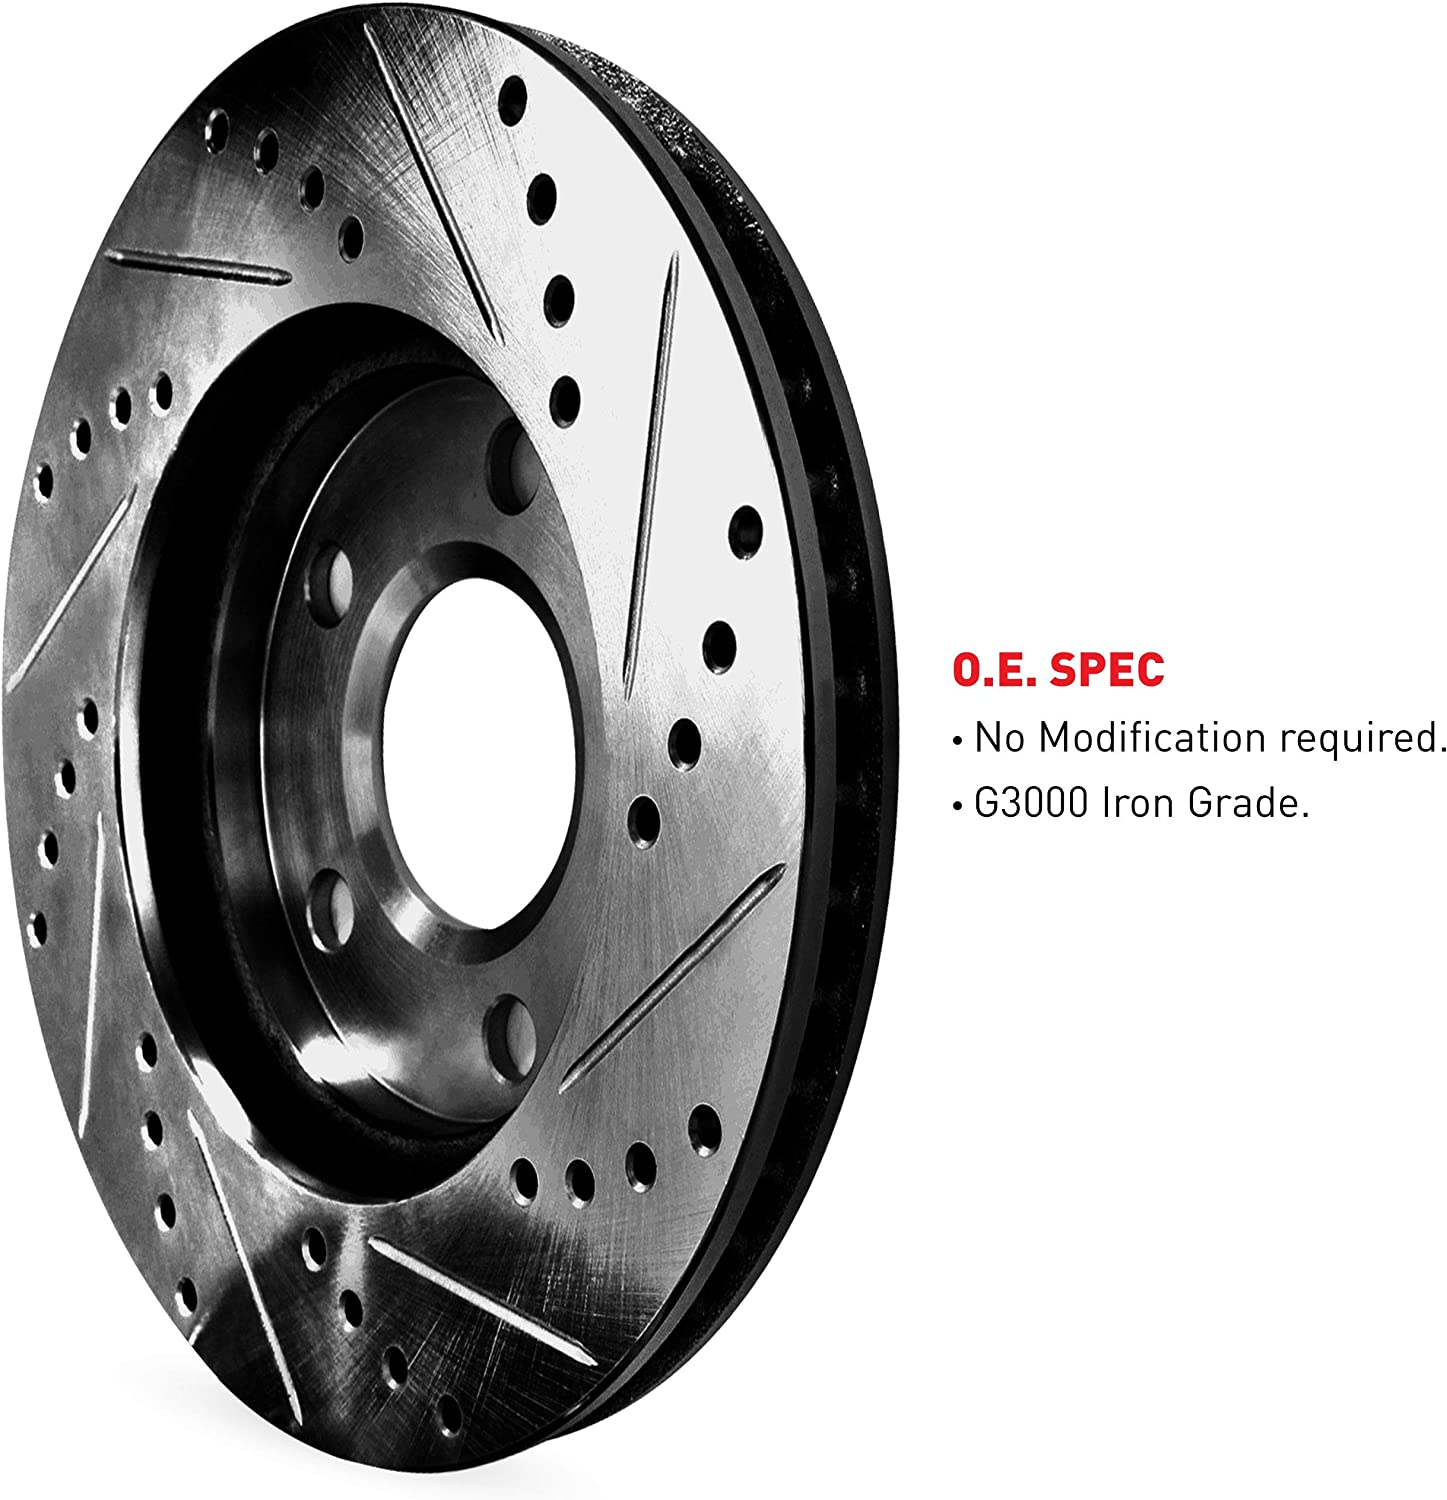 1999 Land Rover Discovery OE Replacement Rotors w//Metallic Pads R See Desc.